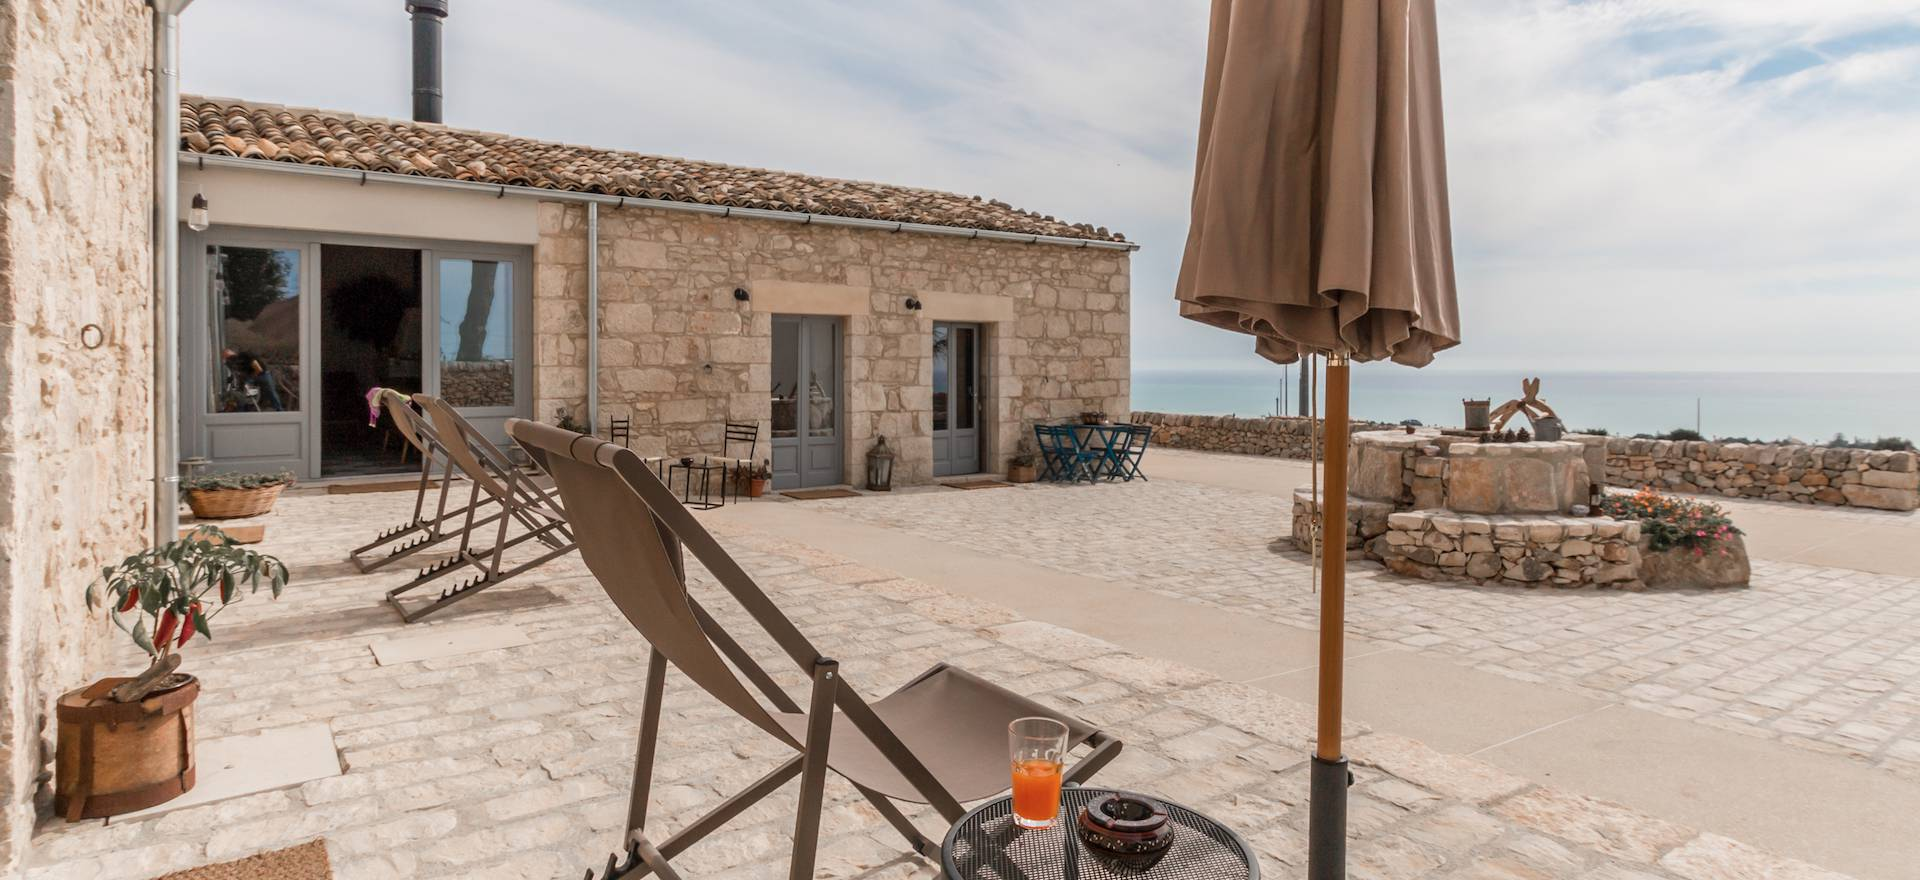 Agriturismo Sicily Great Sicilian hospitality and sea views!